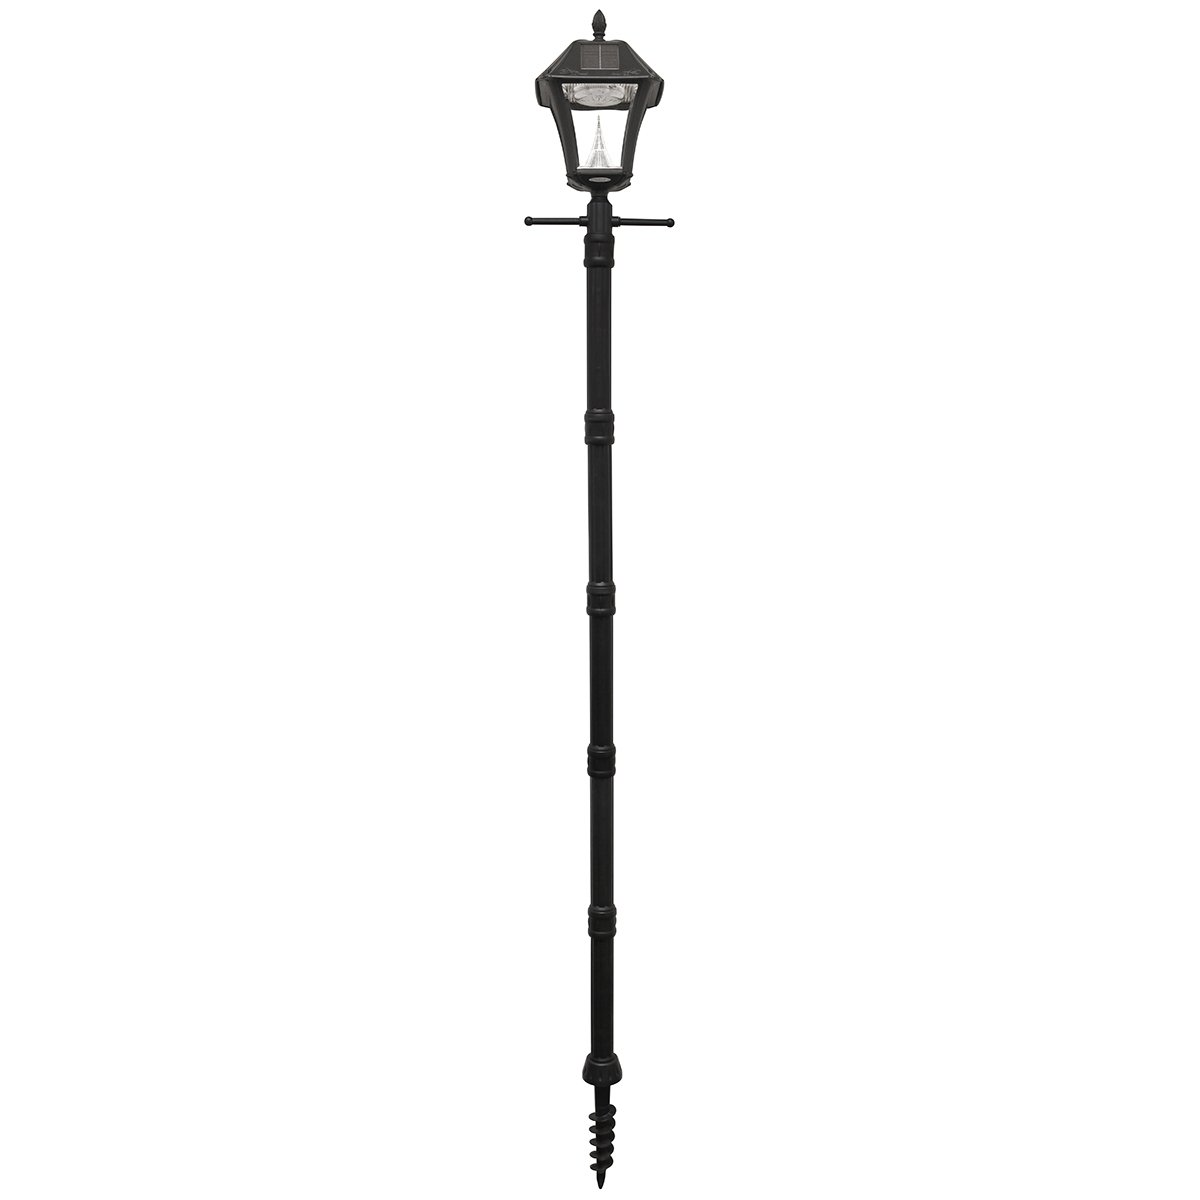 Gama Sonic GS-105PLSG Baytown II Resin Dual Led Color Solar Powered Lamp Post with EZ-Anchor and Planter Base, Black, Large